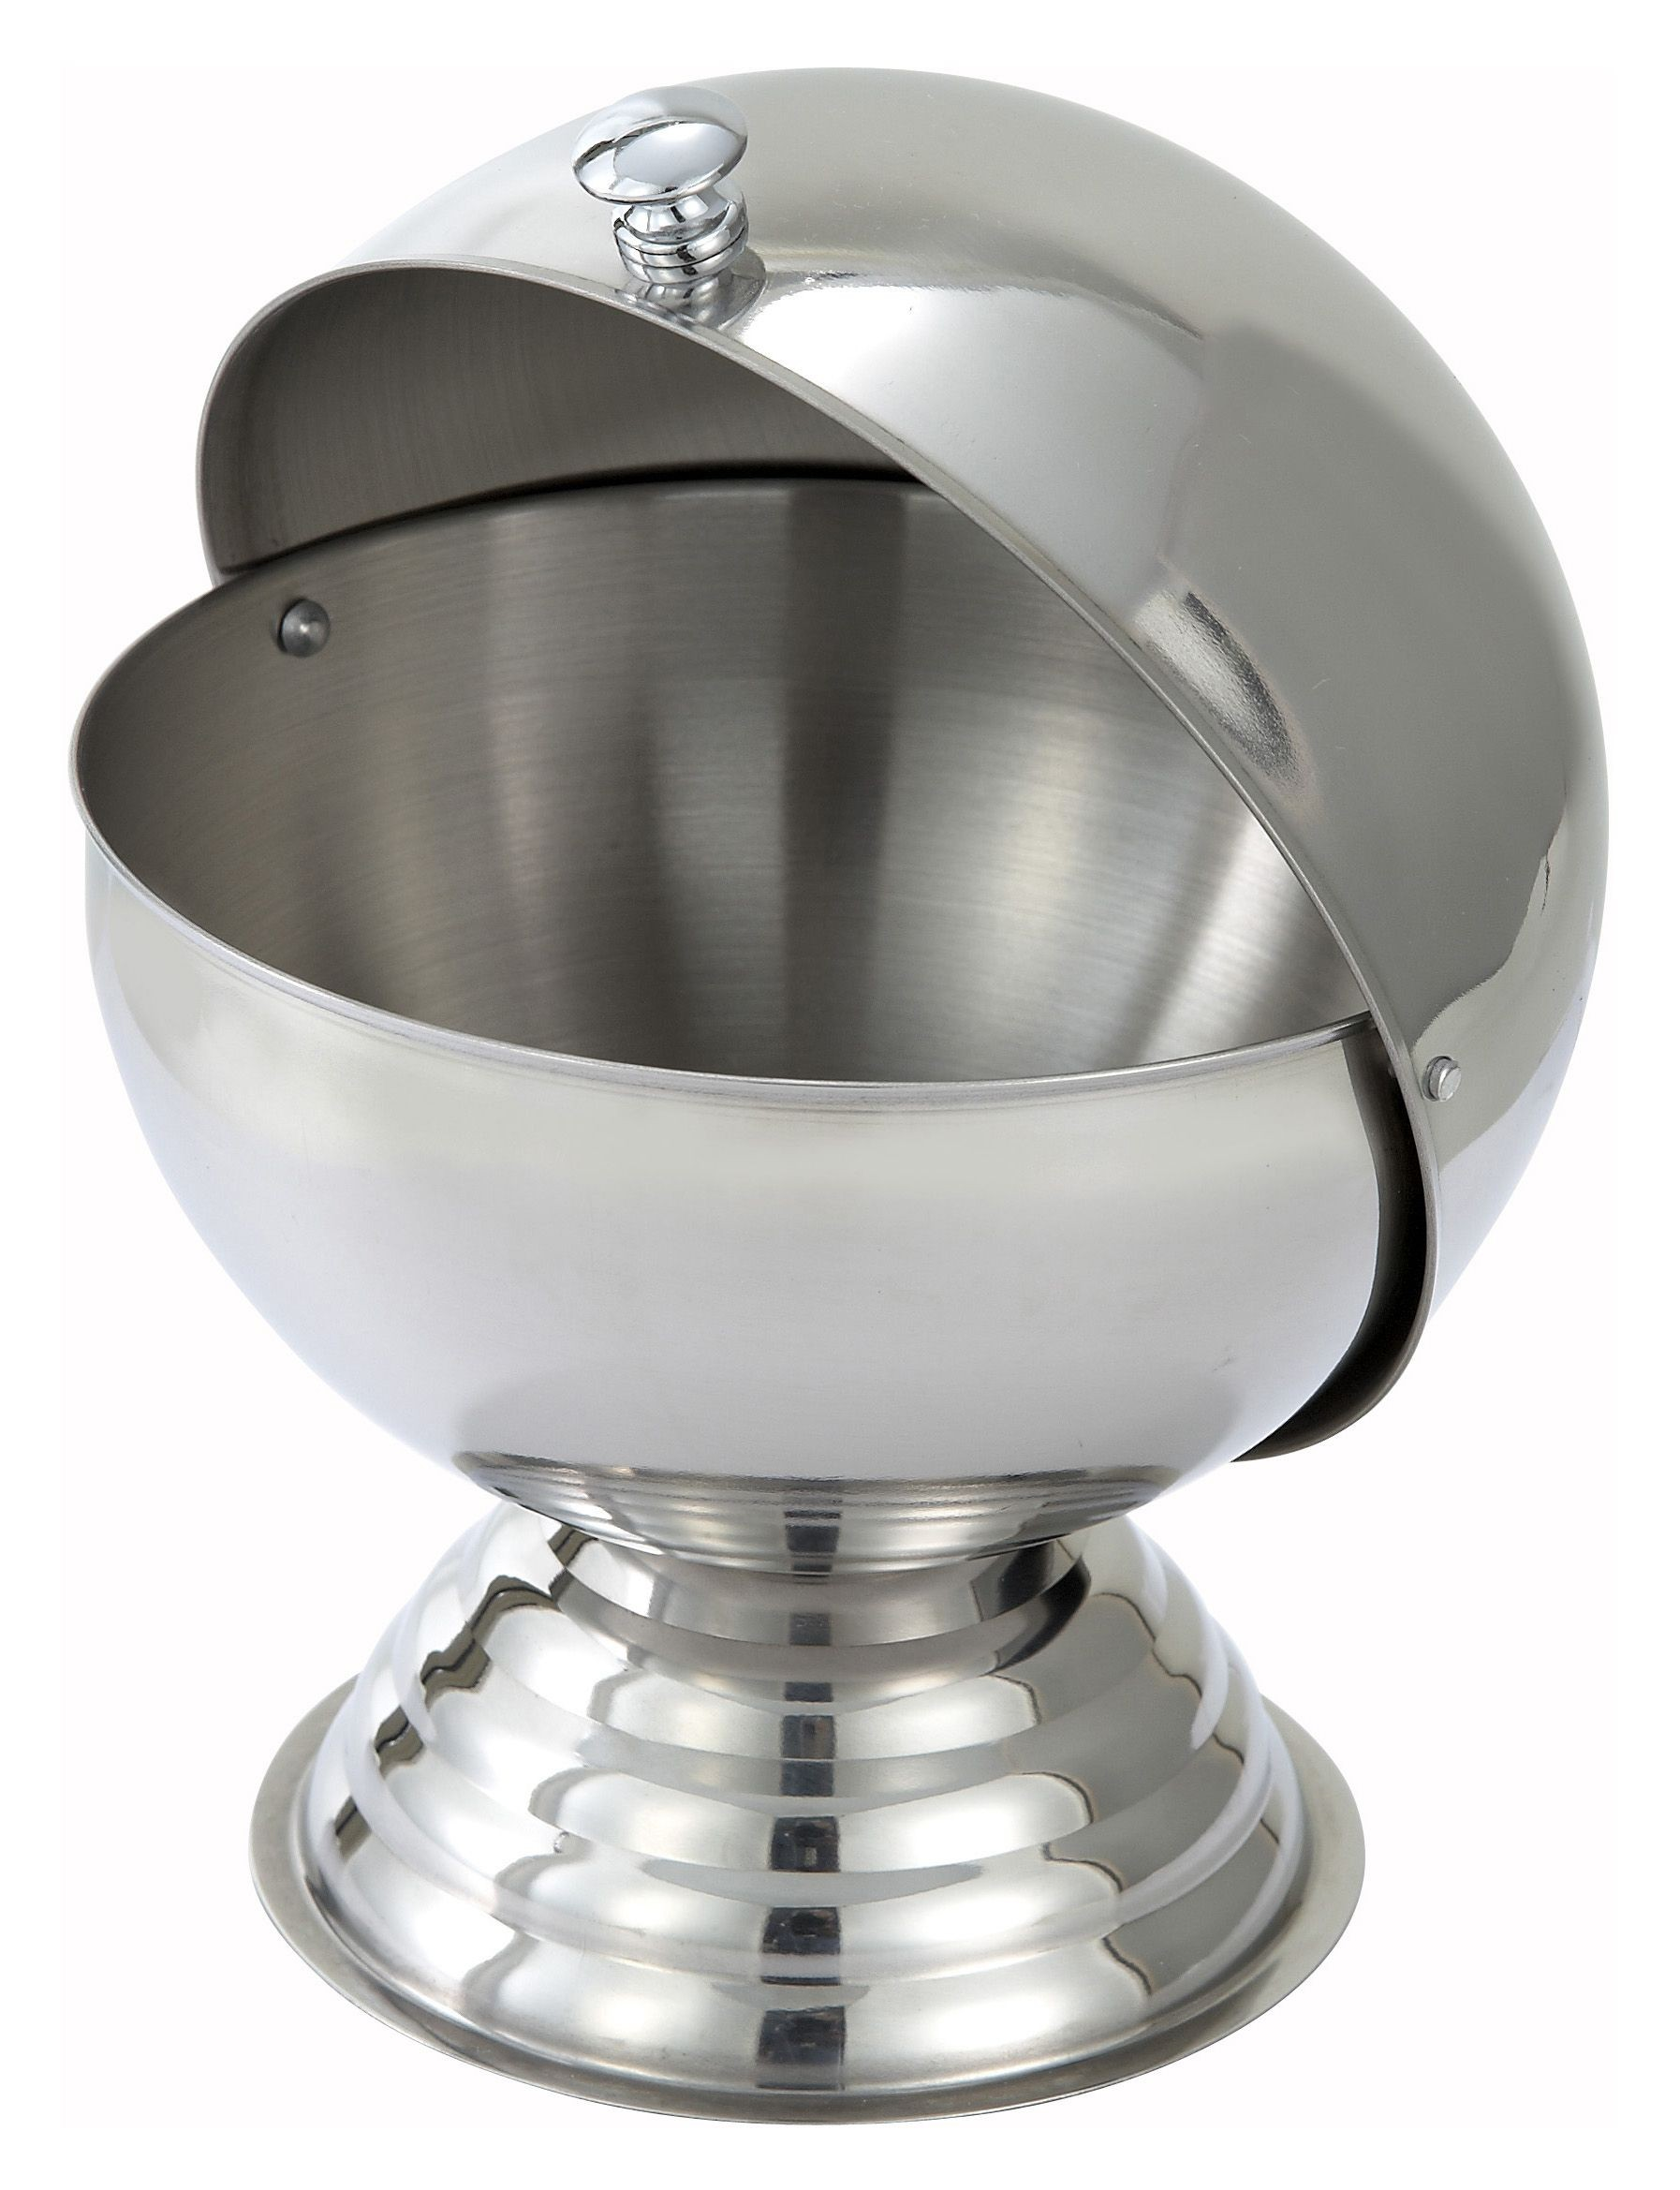 Stainless Steel 30 Oz. Sugar Bowl With Roll Top Opening